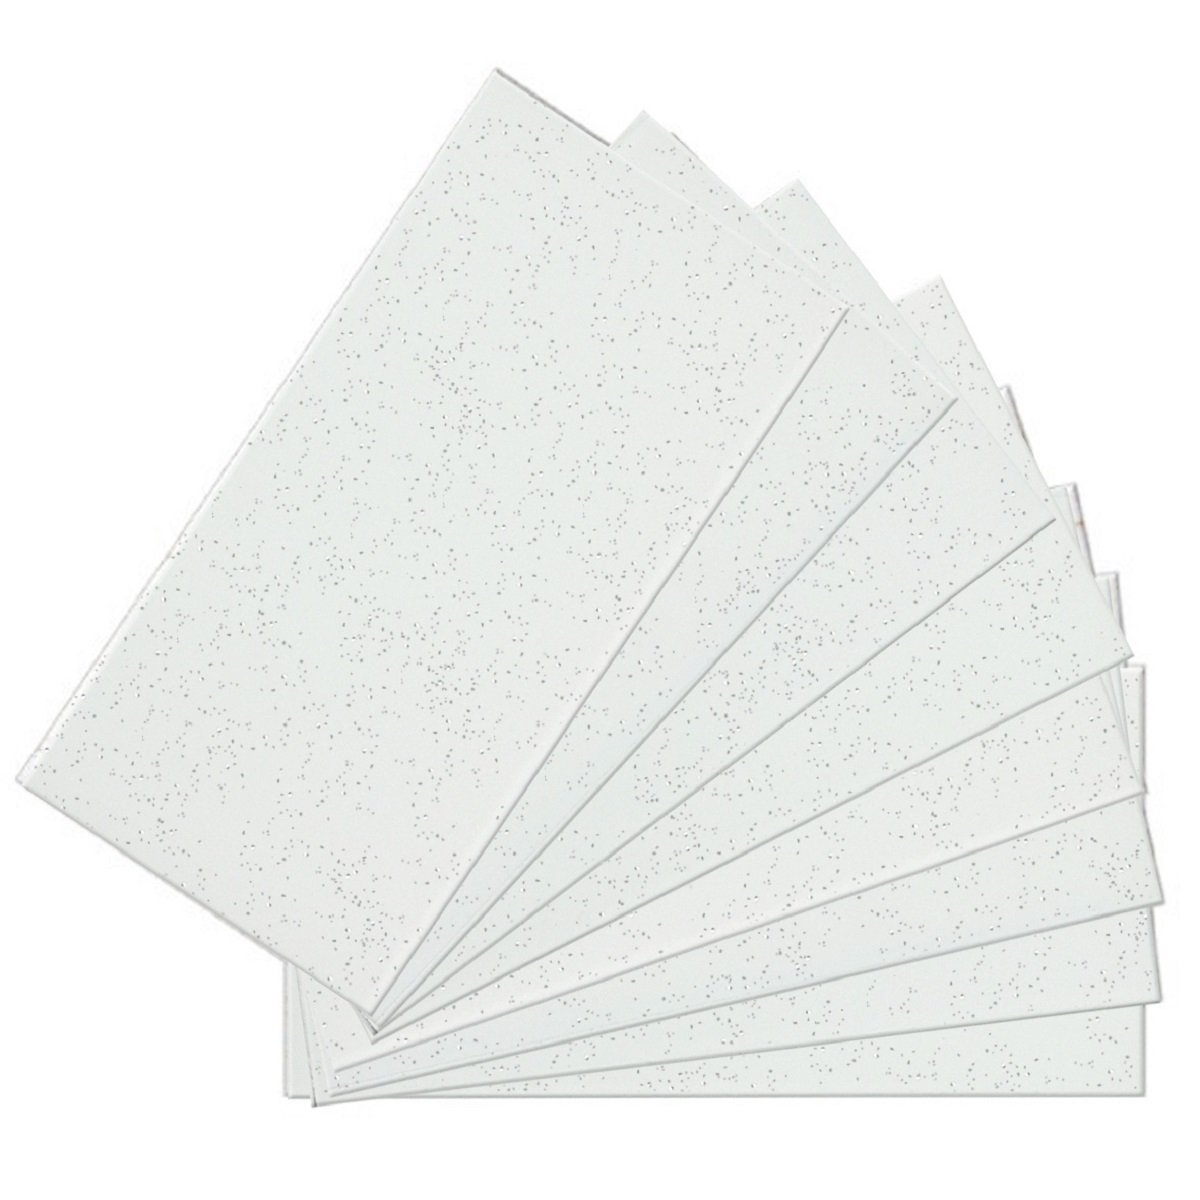 SkinnyTile 04414 Peel and Stick Glittered White Avalanche Glass Wall Tile (48-Pack), 6'' x 3''